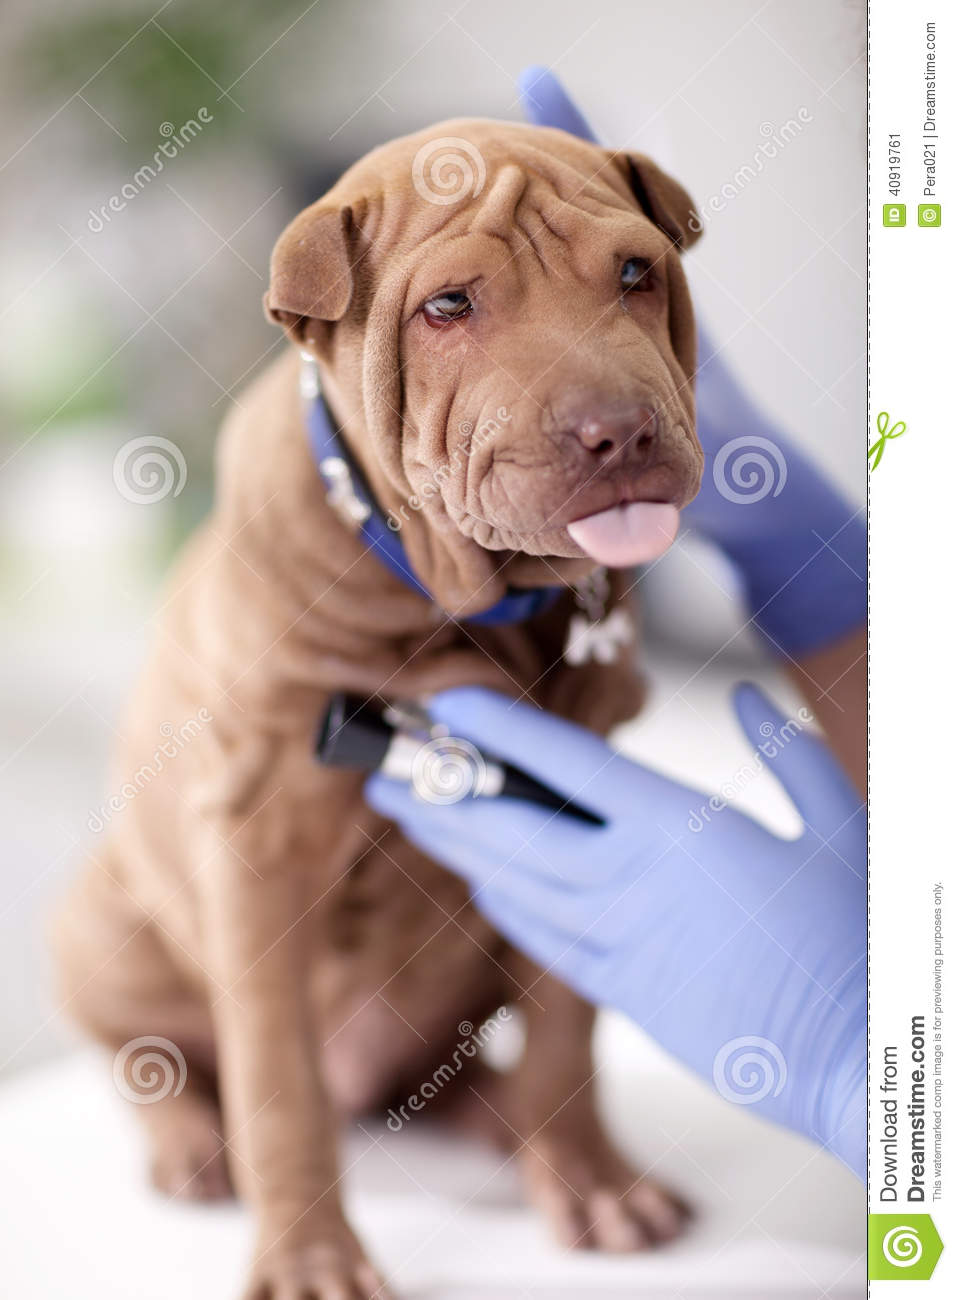 Video Of Insulin Shot To Dog